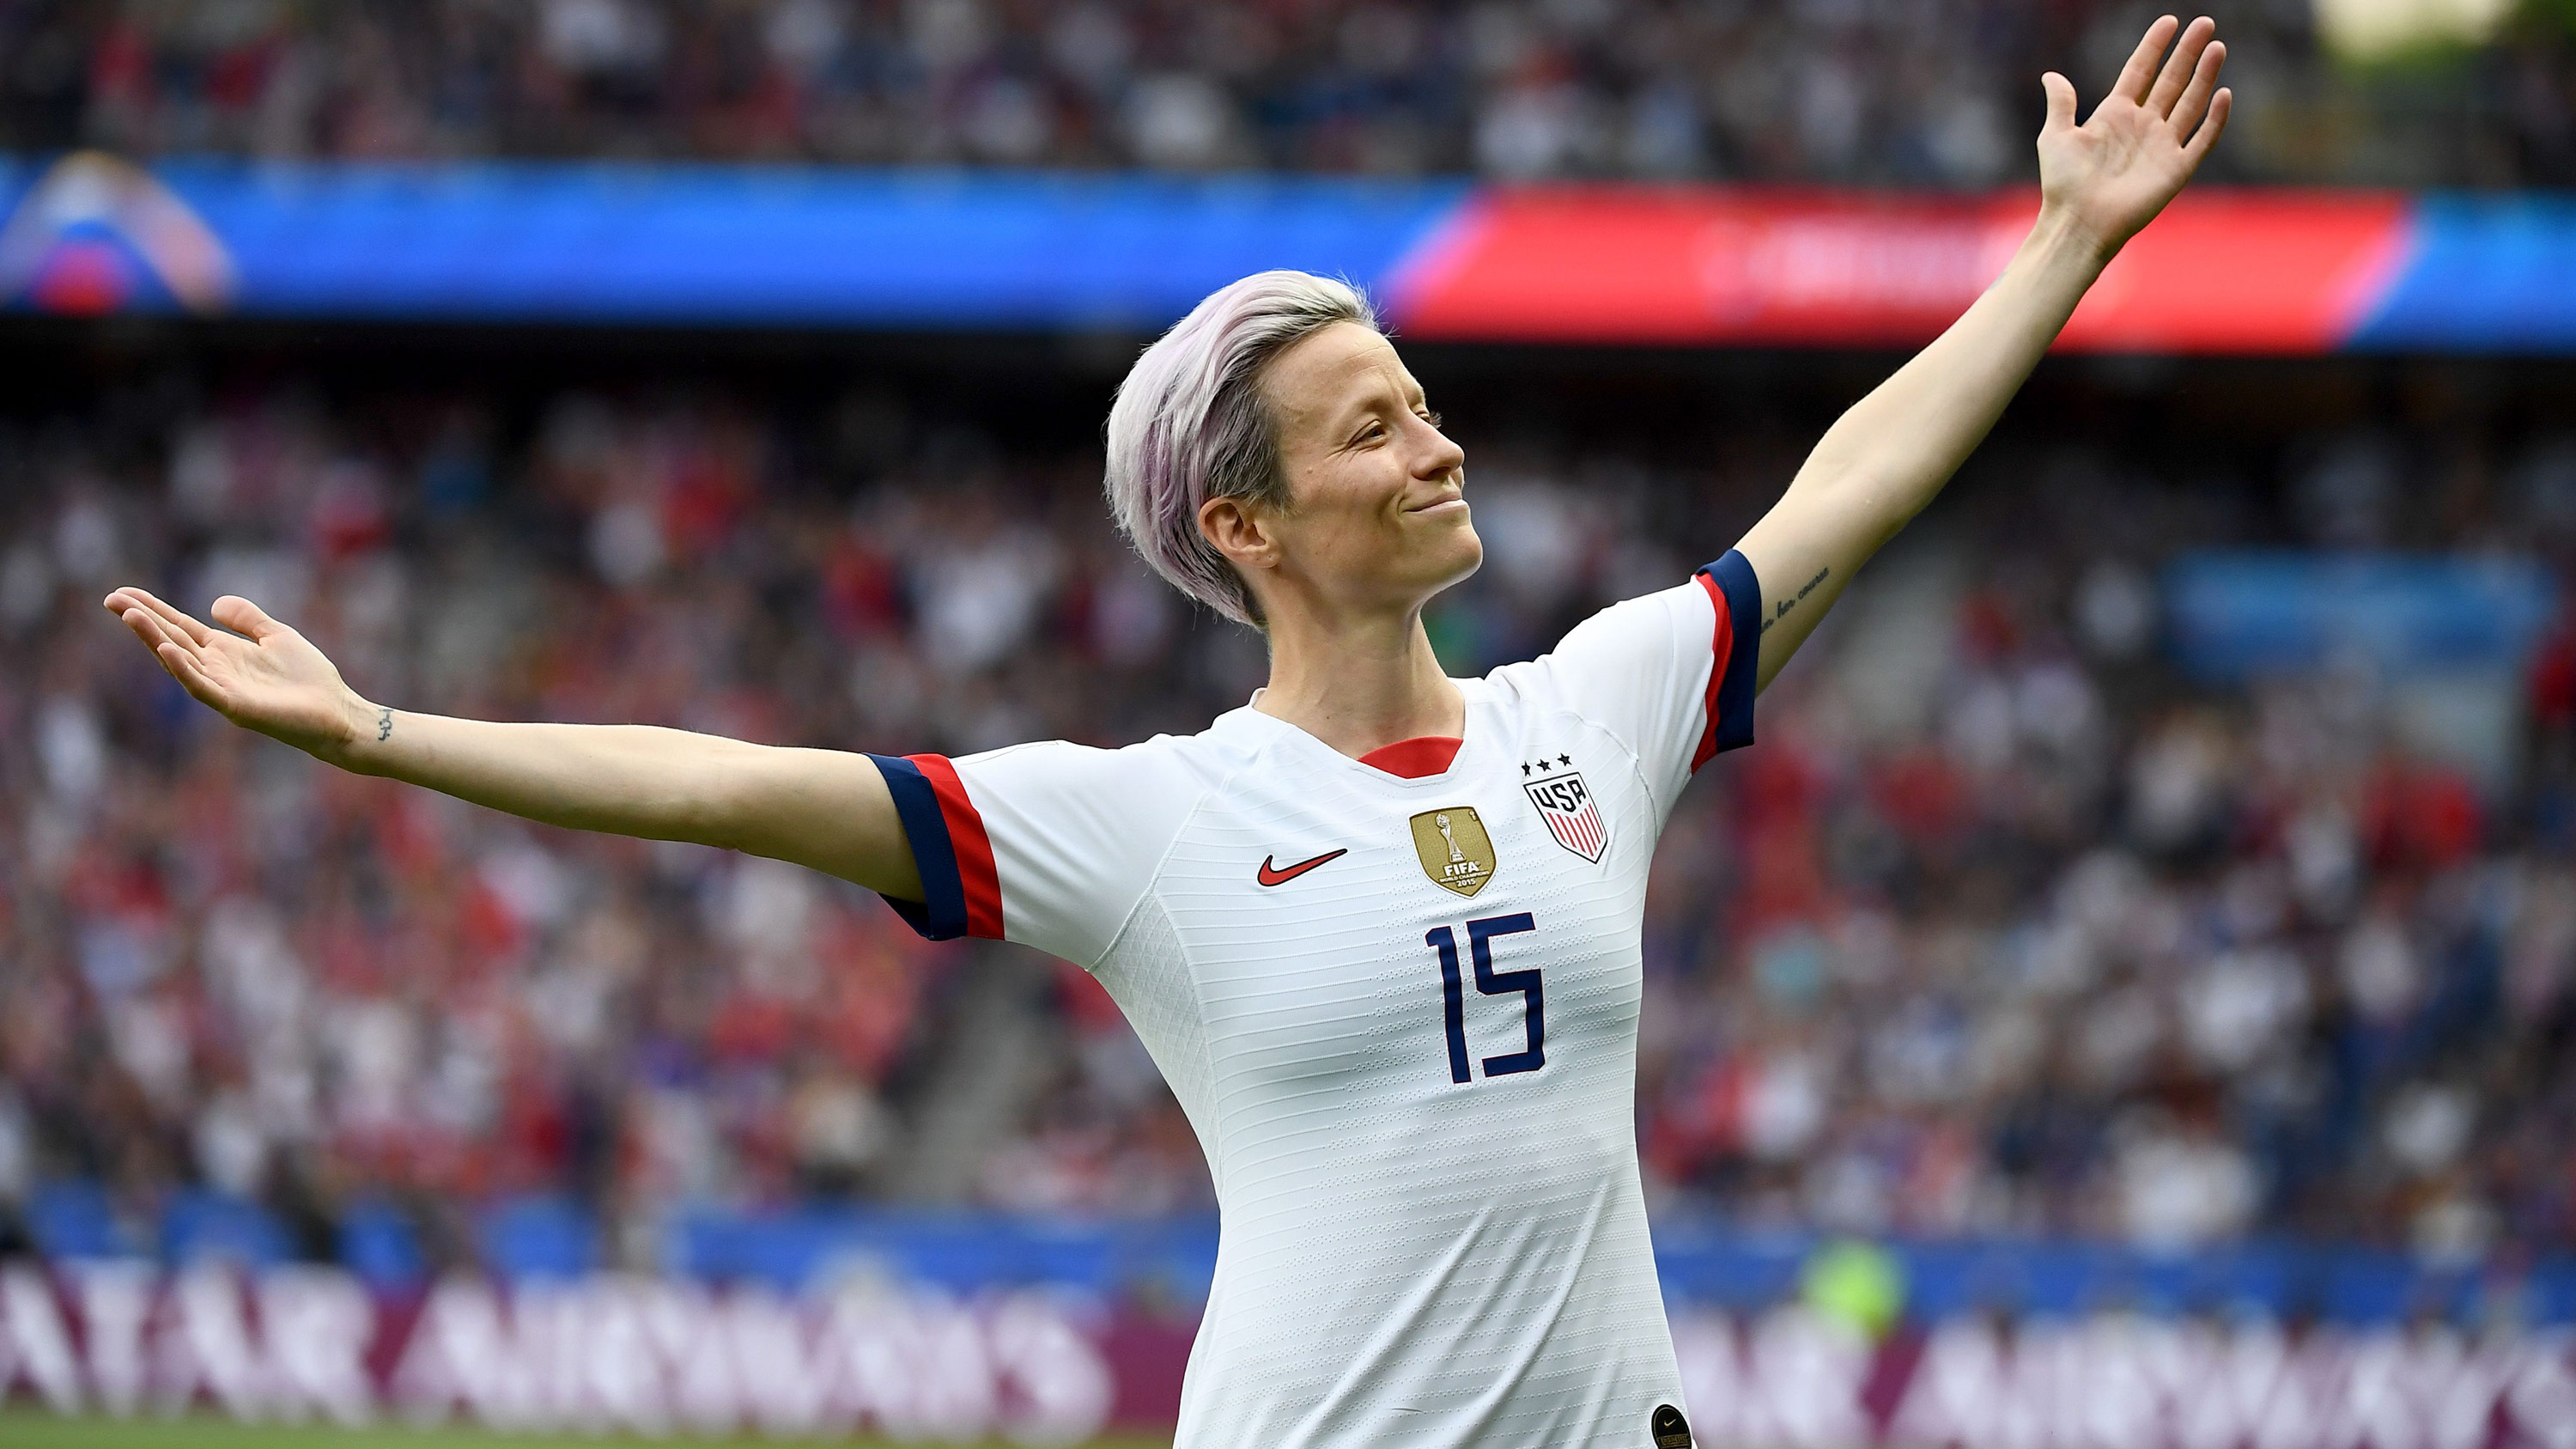 Megan Rapinoe says 'we all have a responsibility to make the world a better place'